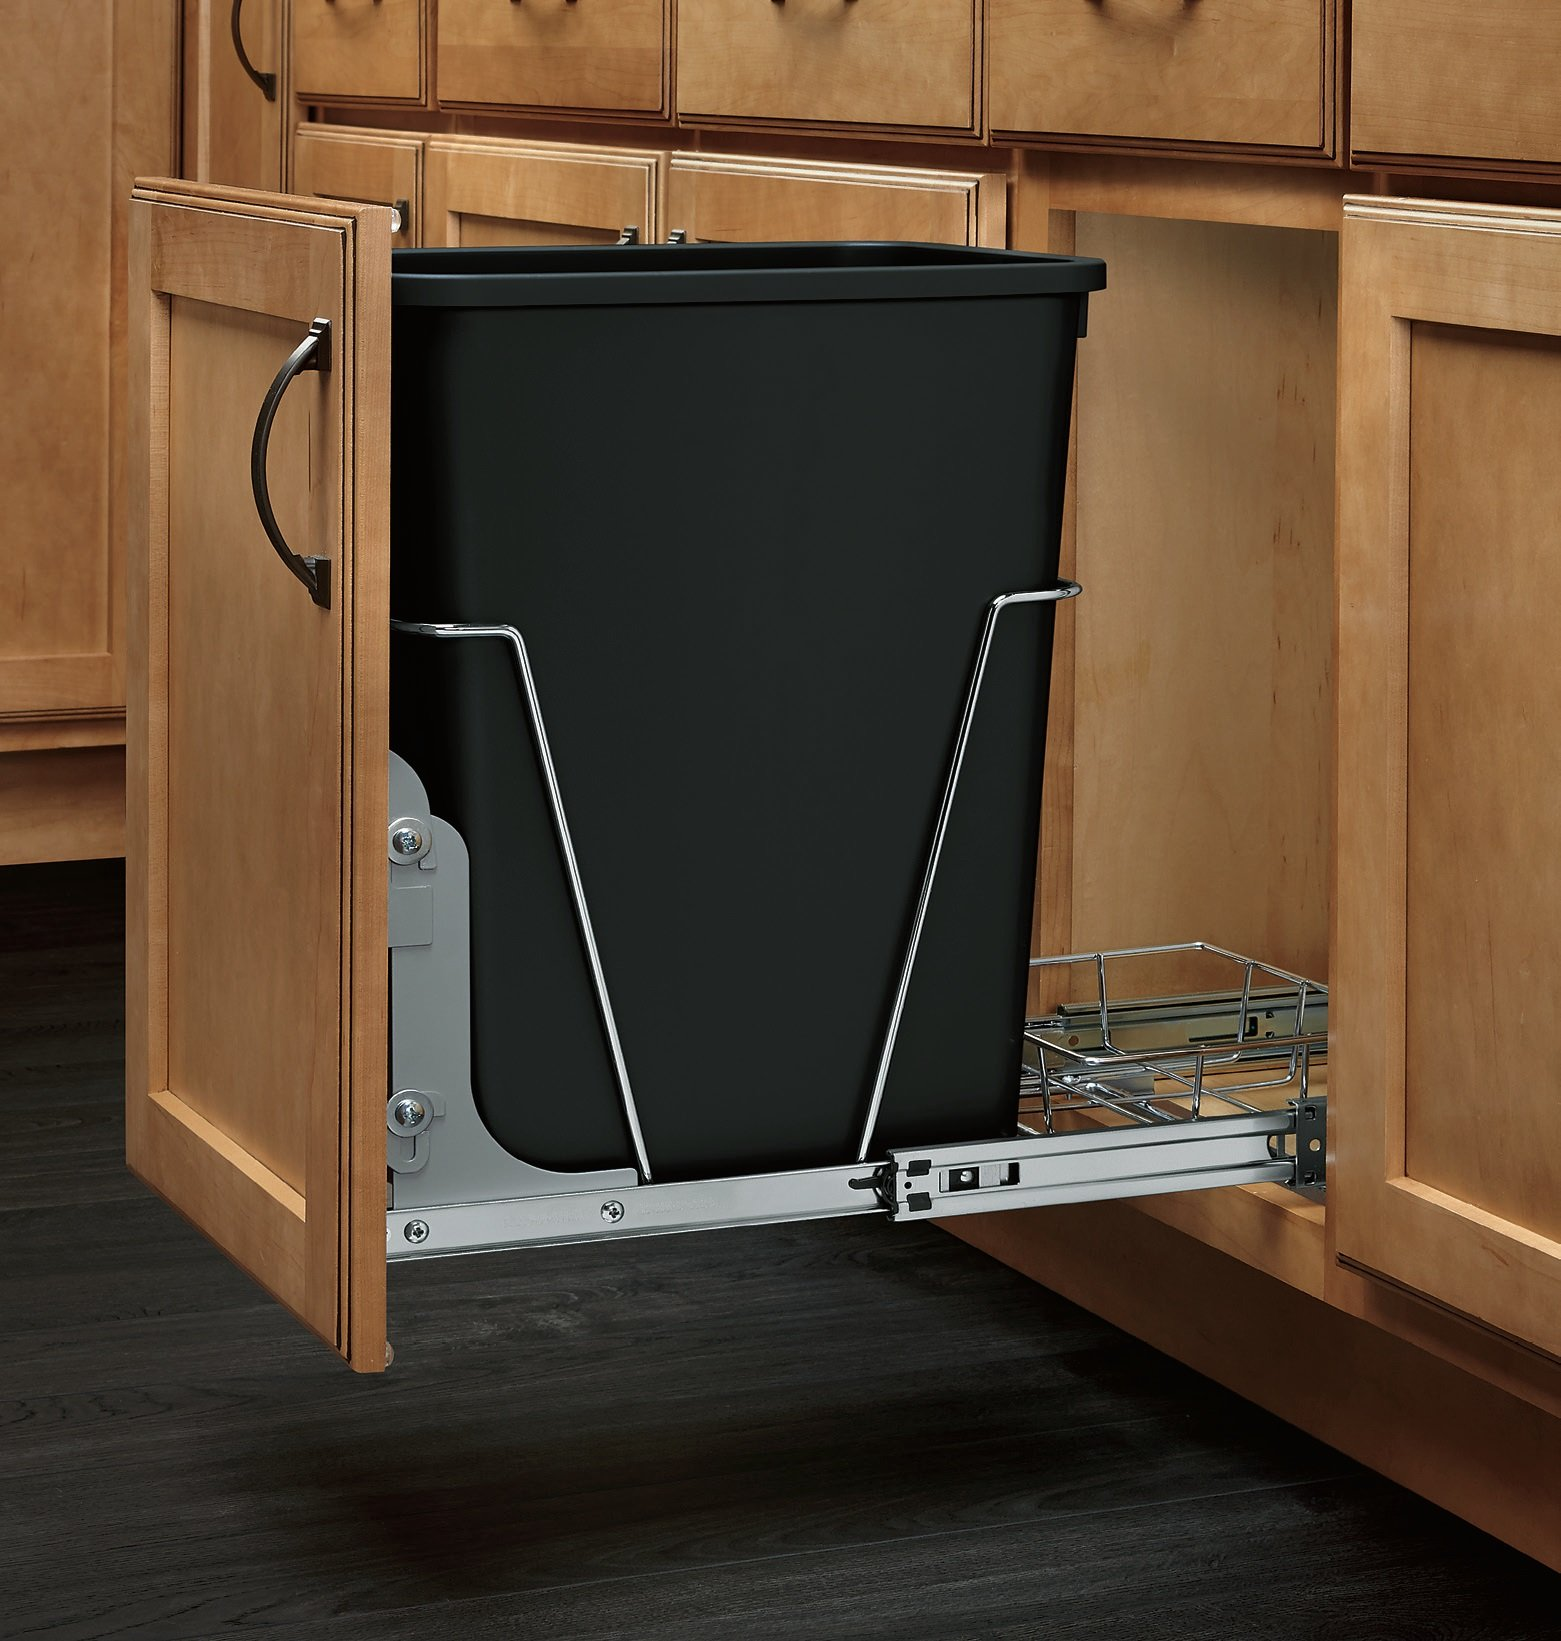 RV SERIES Pullout Waste Containers (Individual Pack) Single 35 qt. with Rear Basket